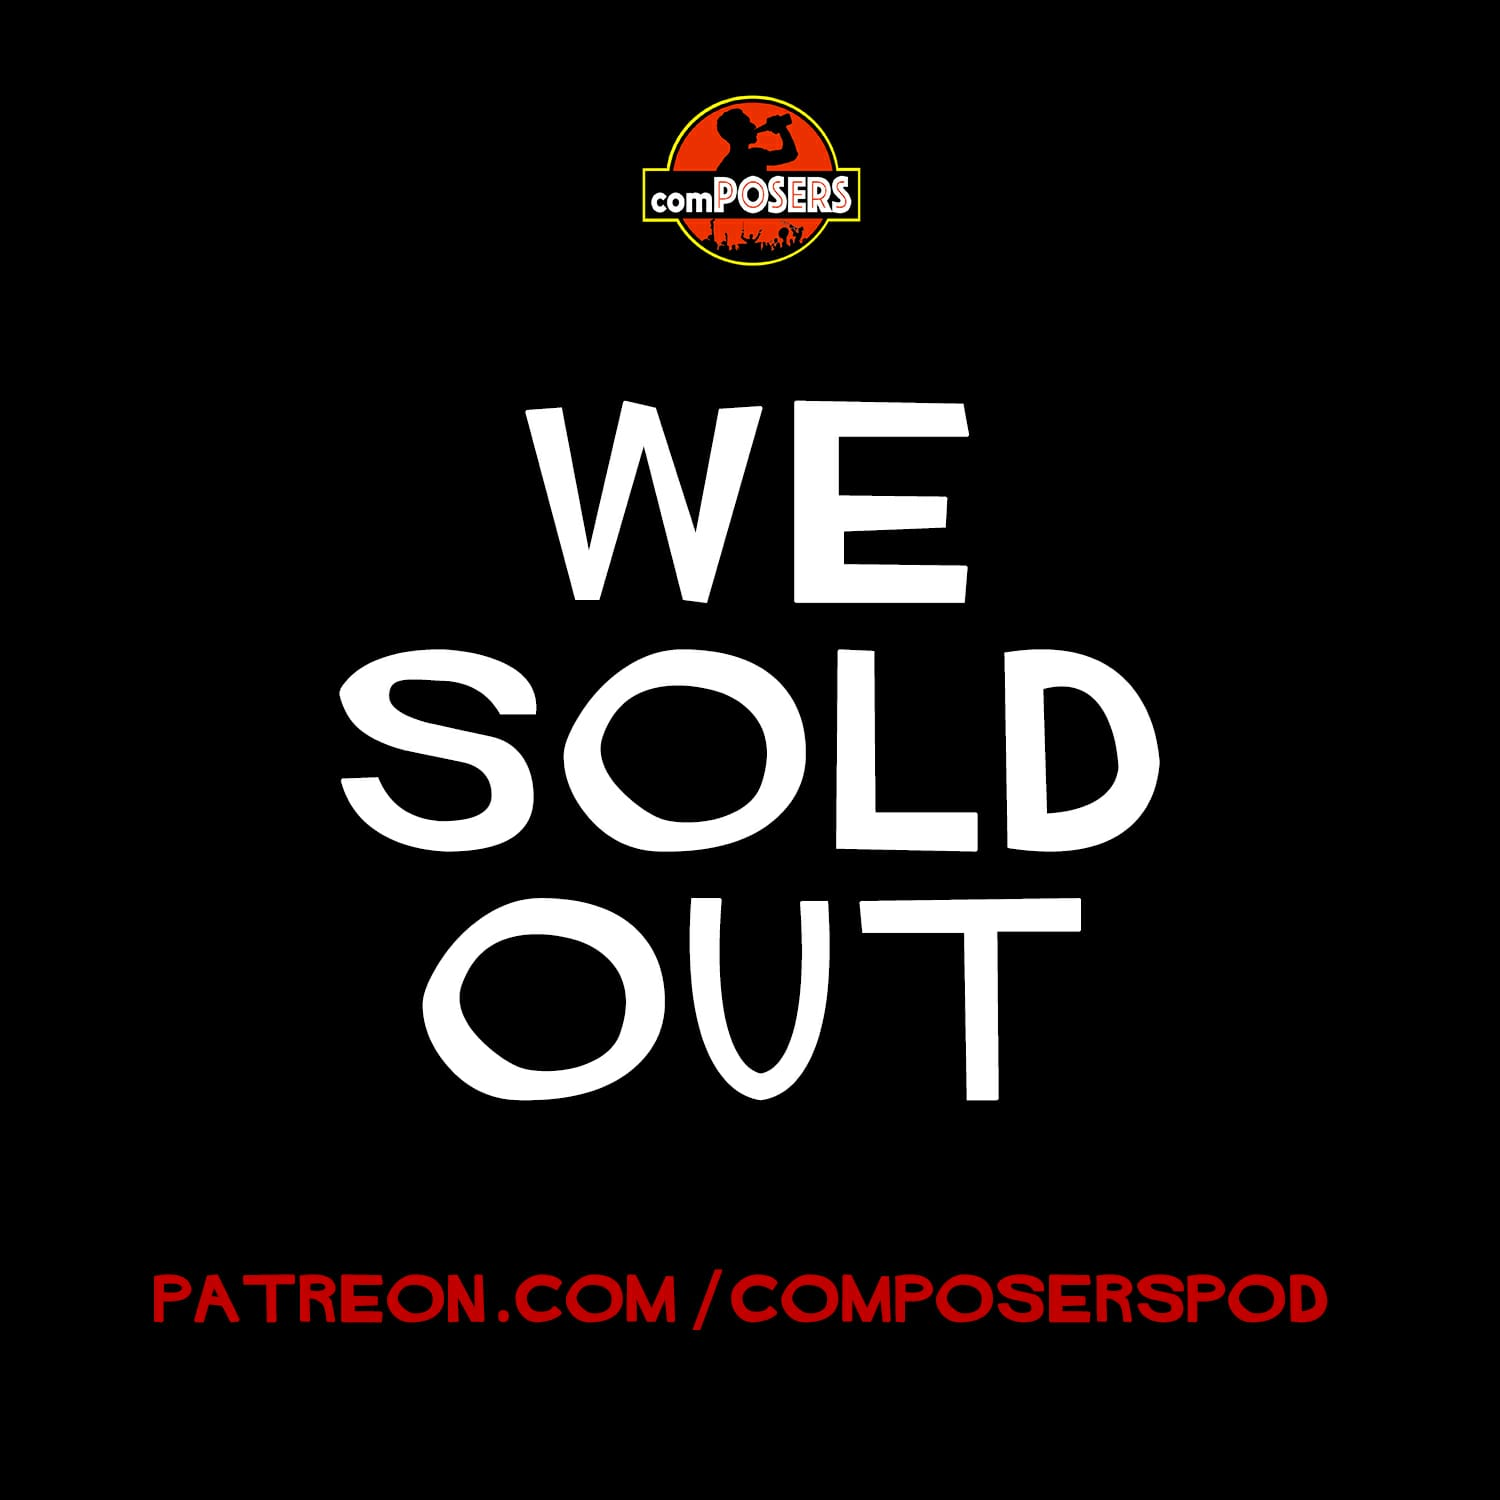 we sold out